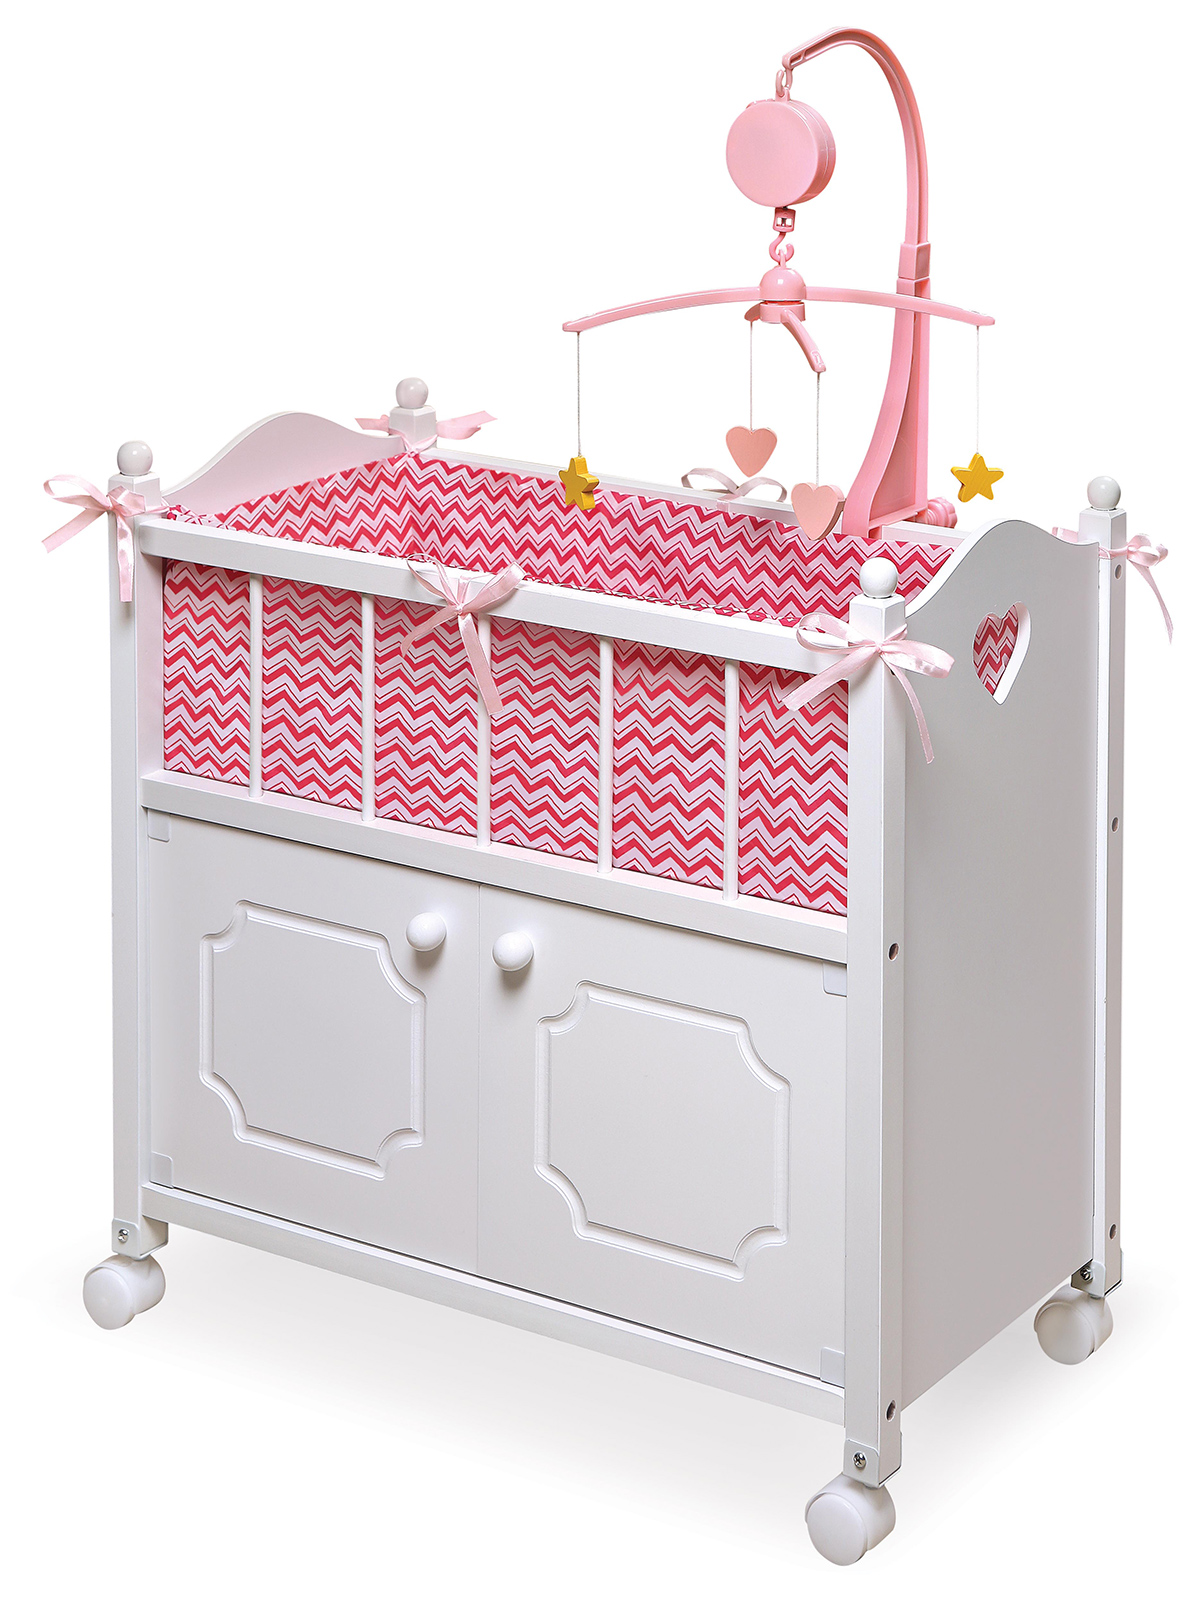 Doll Crib with Cabinet, Bedding, & Mobile - Chevron Print PartNumber: 05210979000P